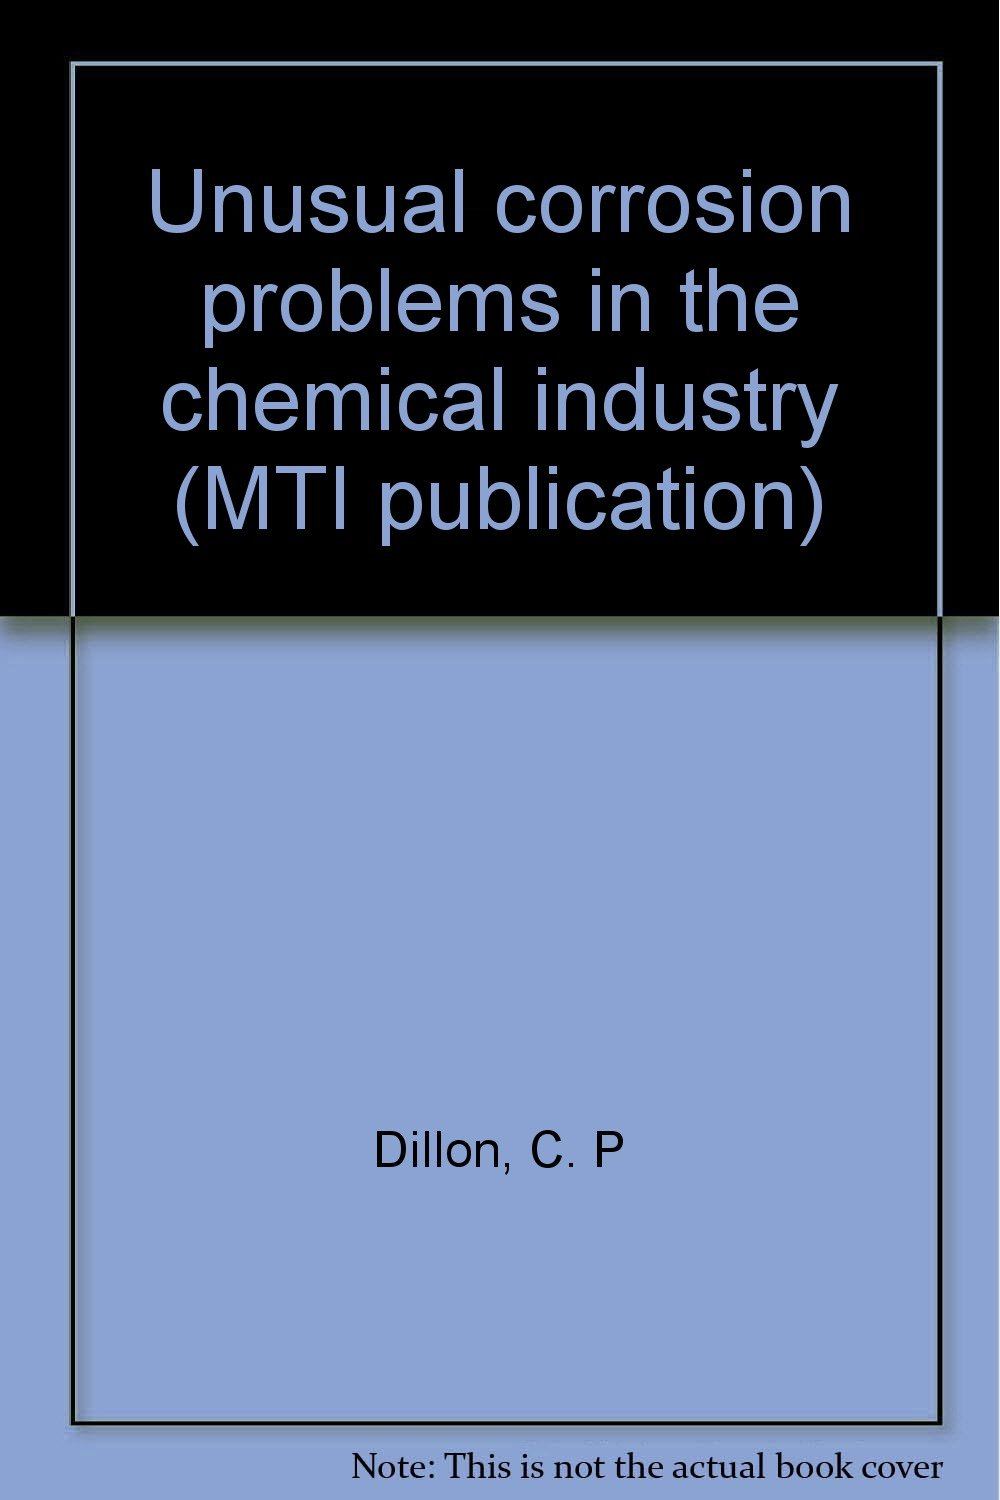 Unusual corrosion problems in the chemical industry (MTI publication)